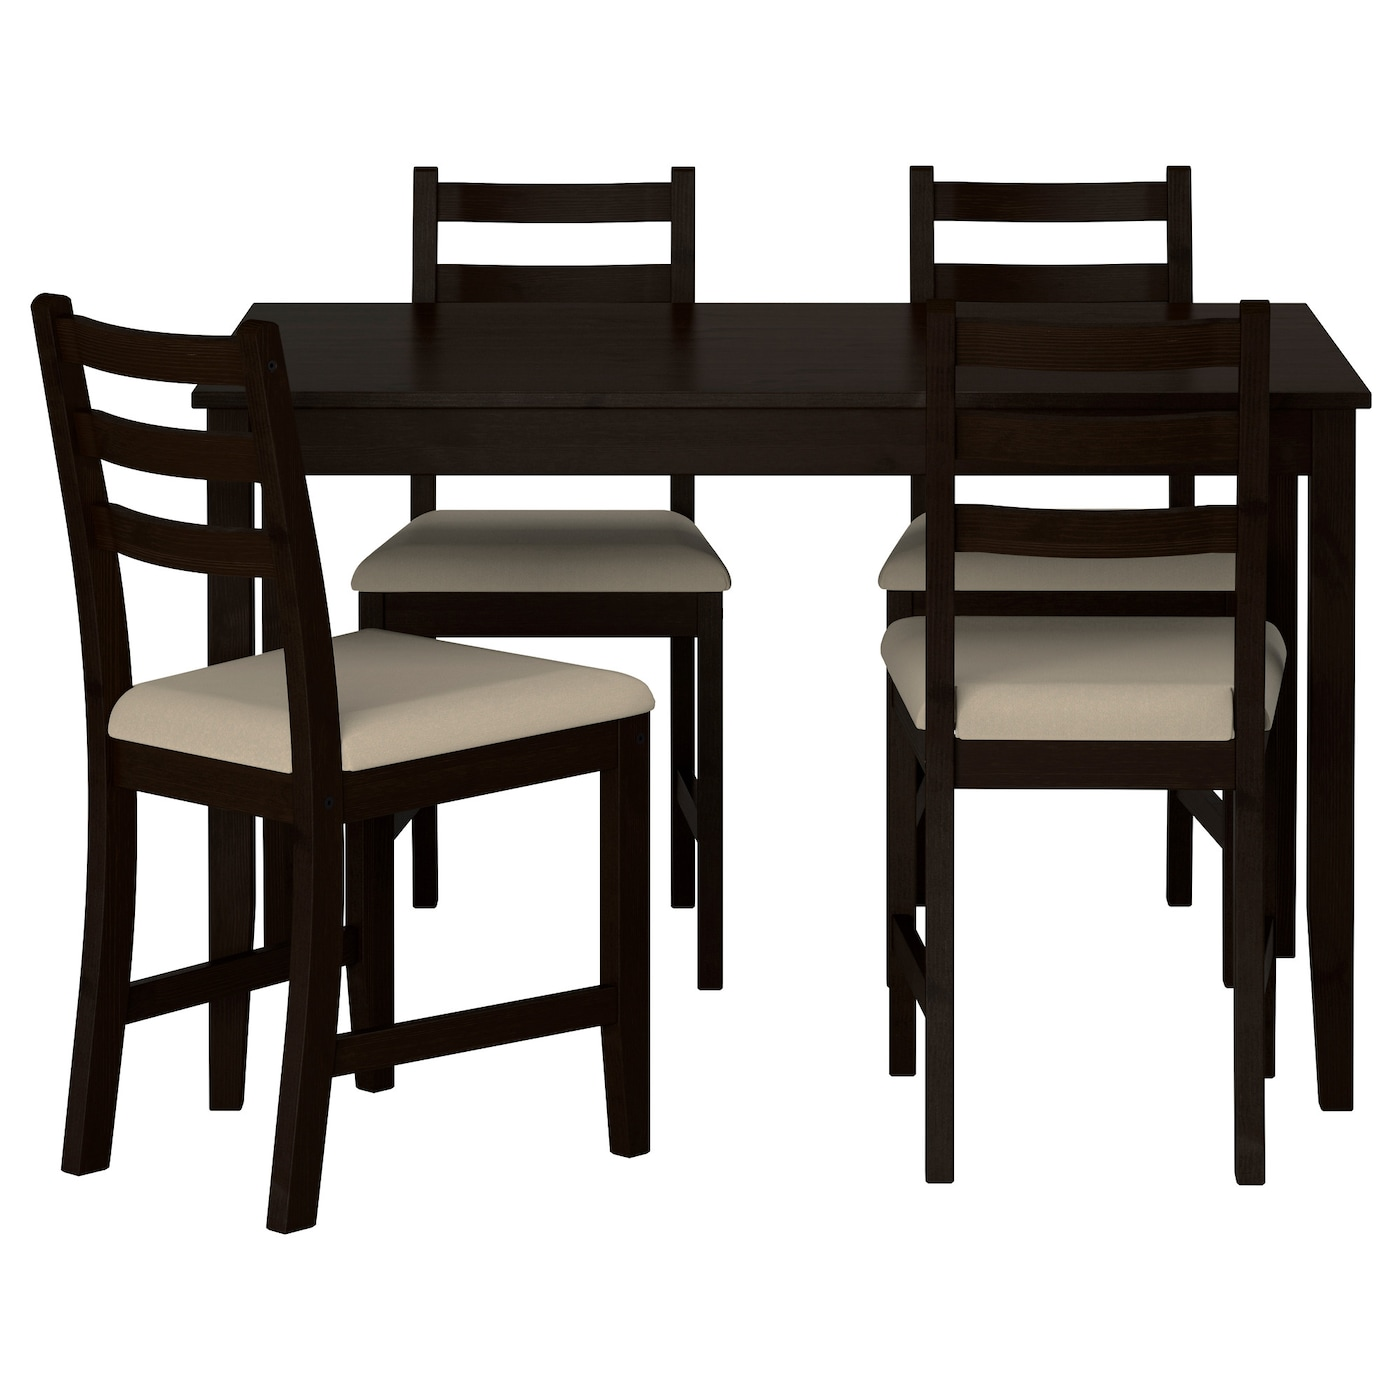 Lerhamn table and 4 chairs black brown ramna beige 118x74 for Ikea dining table and chairs set